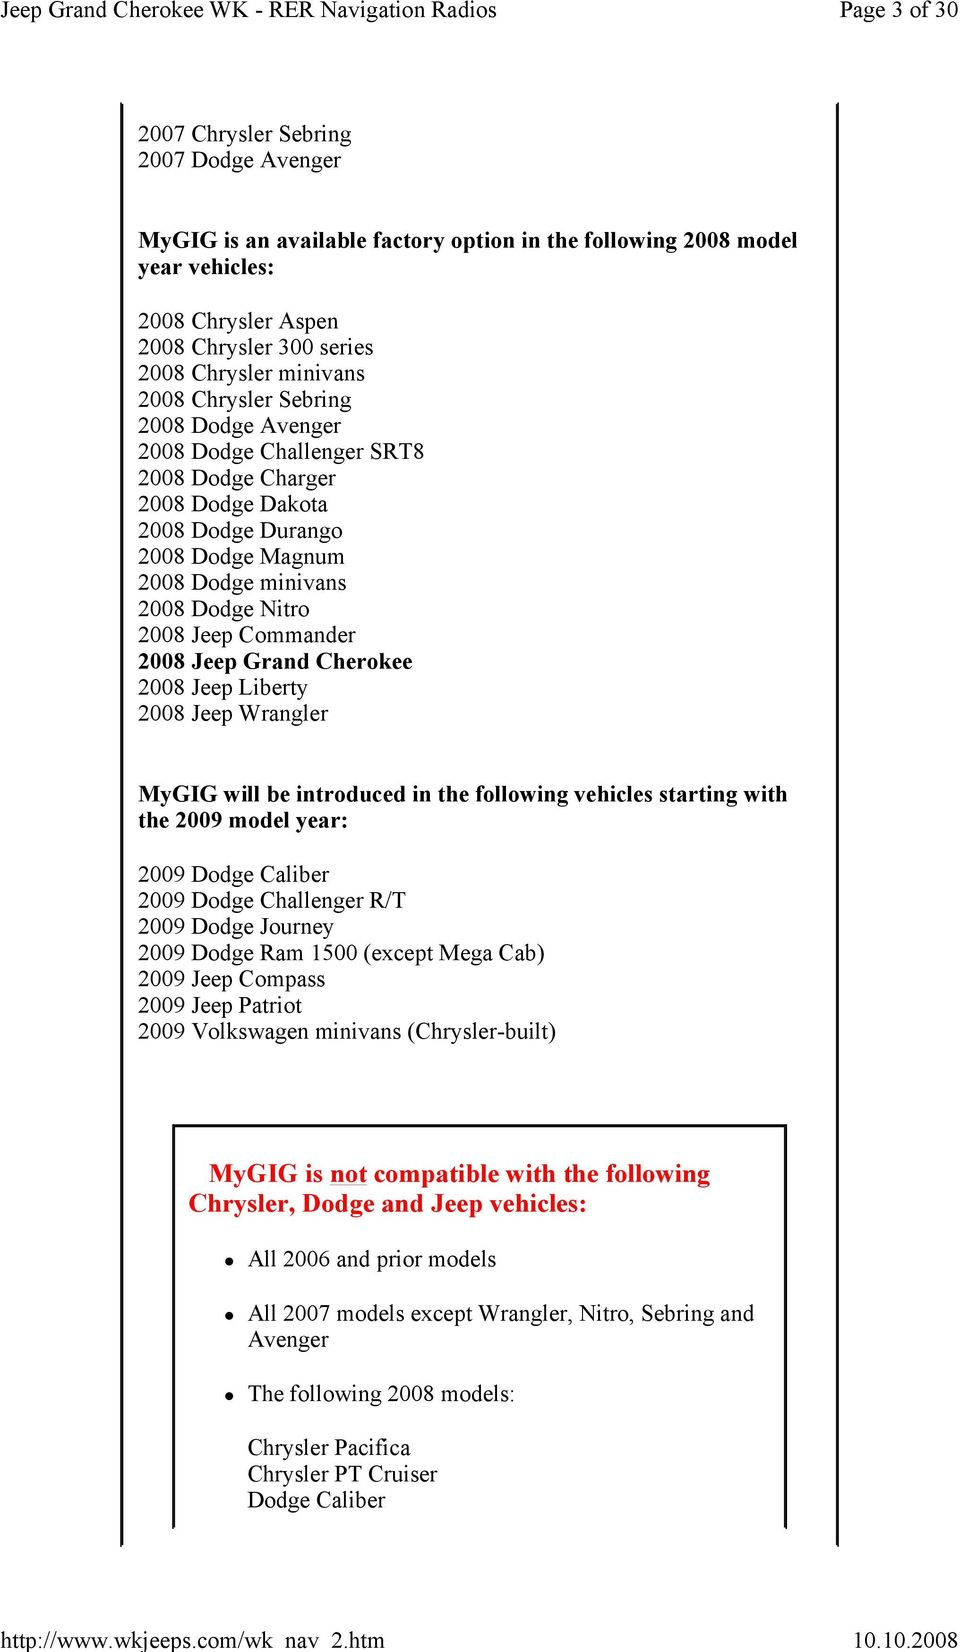 MyGIG radios (models RER, REN and REU) - PDF